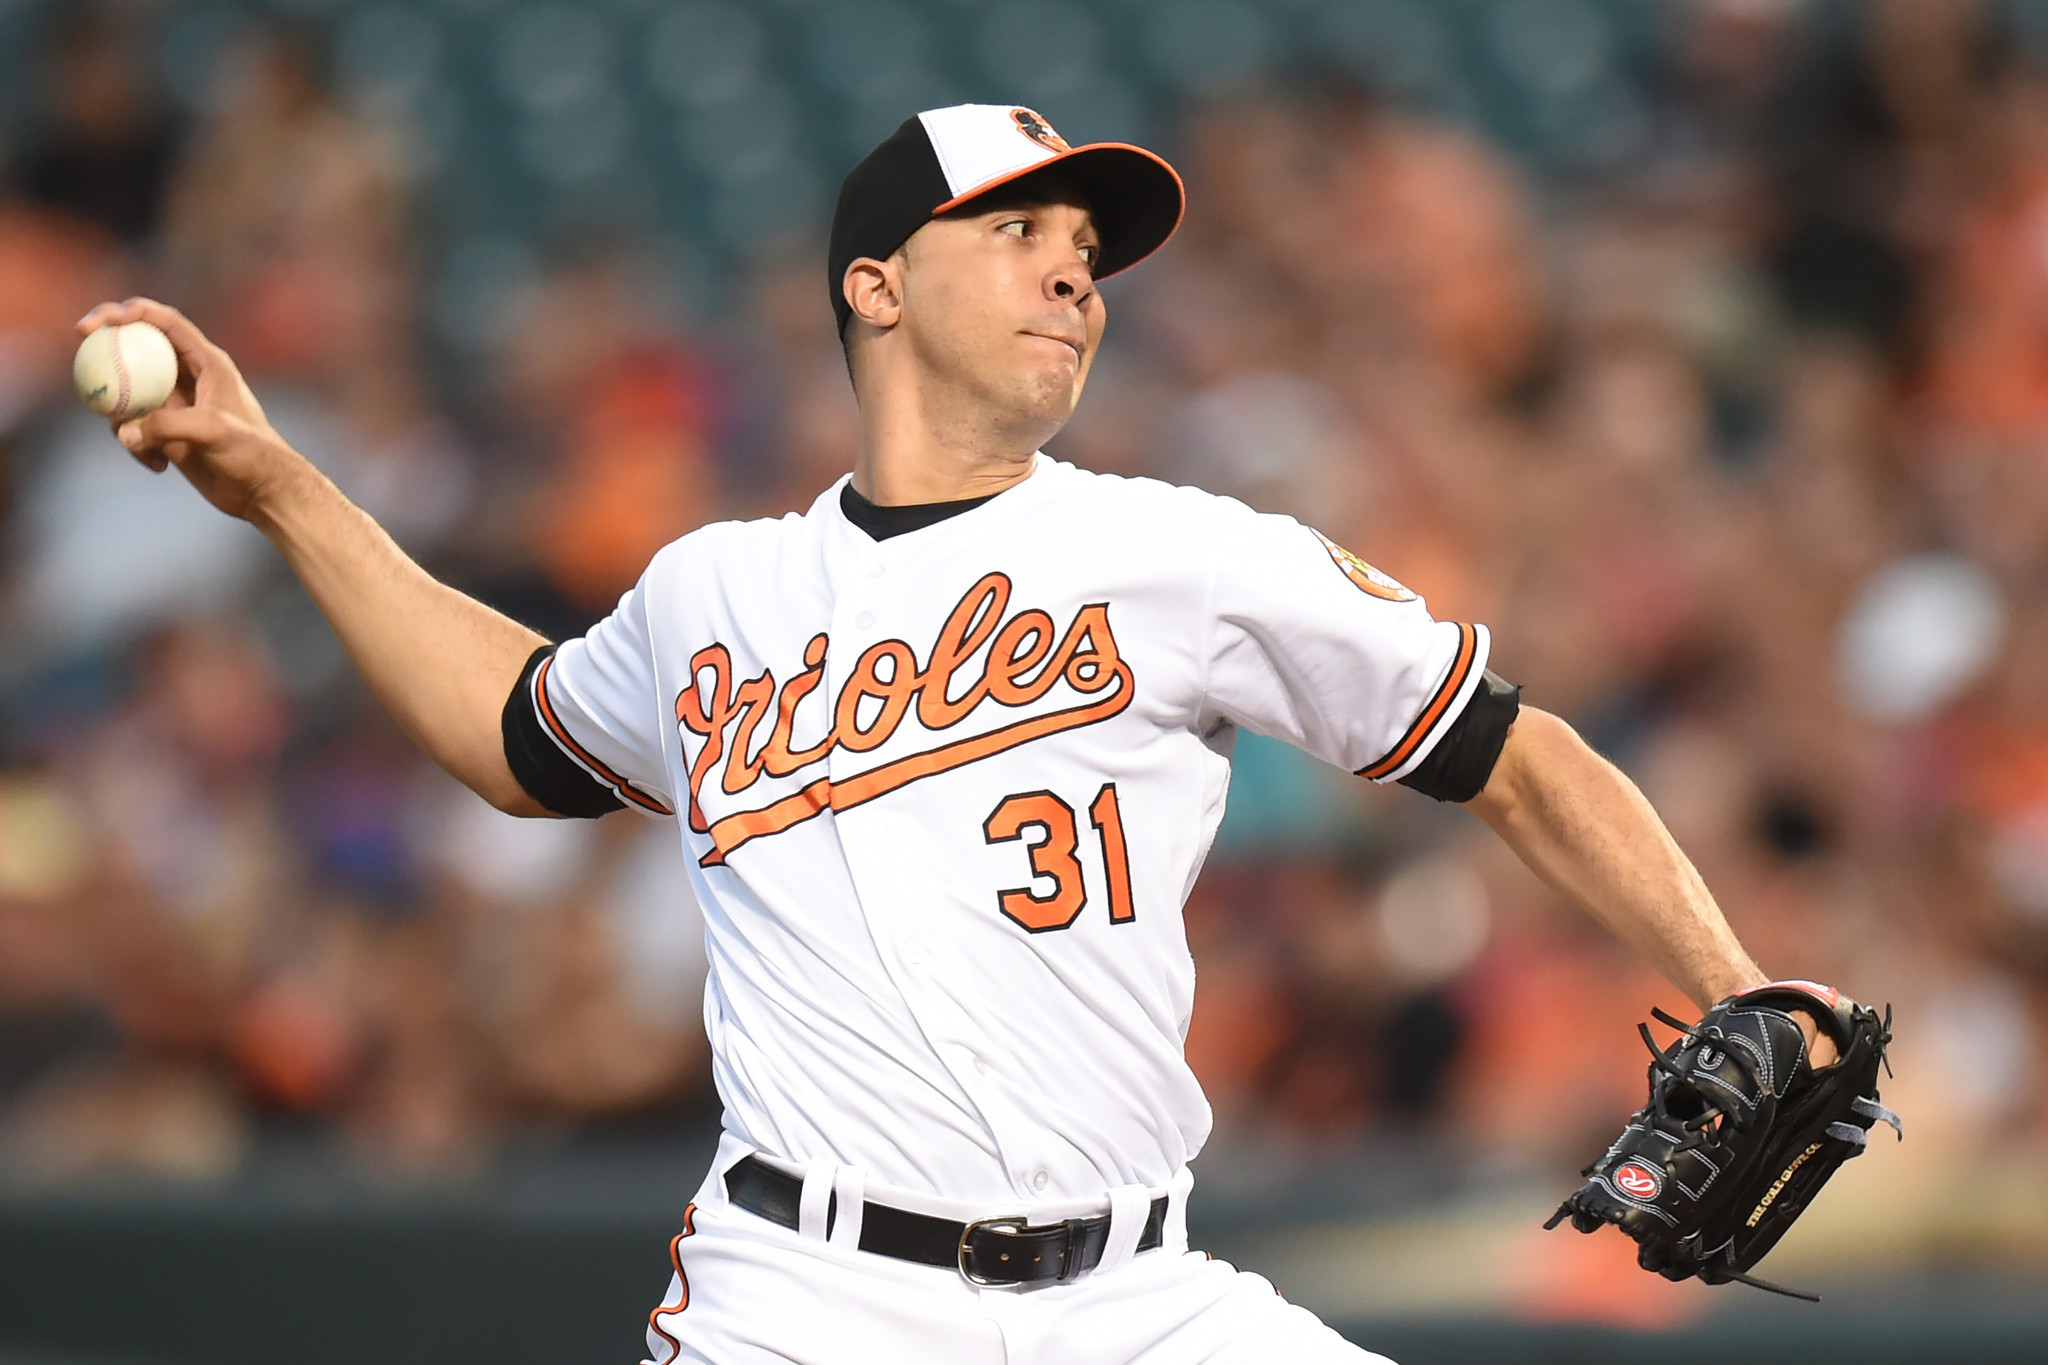 Bal-orioles-right-hander-ubaldo-jimenez-comes-through-again-when-needed-the-most-20160830